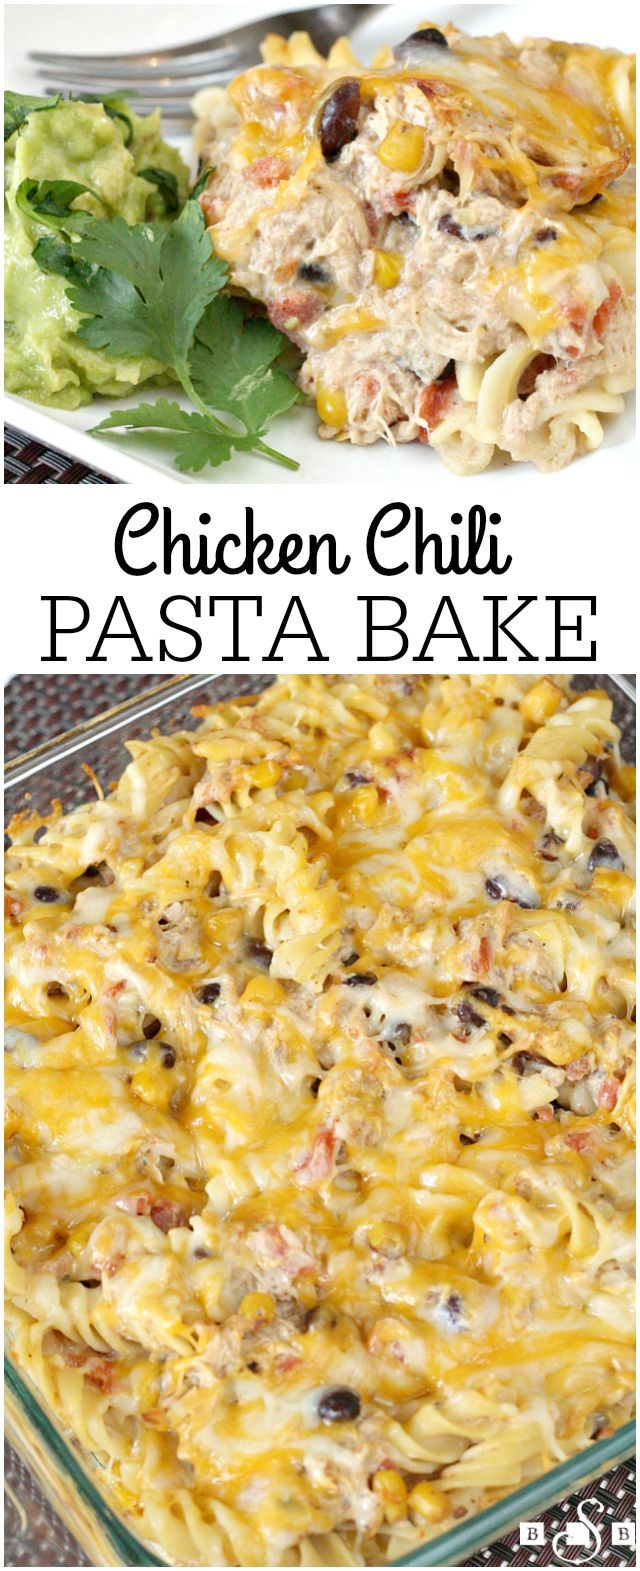 Chicken Chili Pasta Bake - Butter With a Side of Bread AD #Yesyoucan